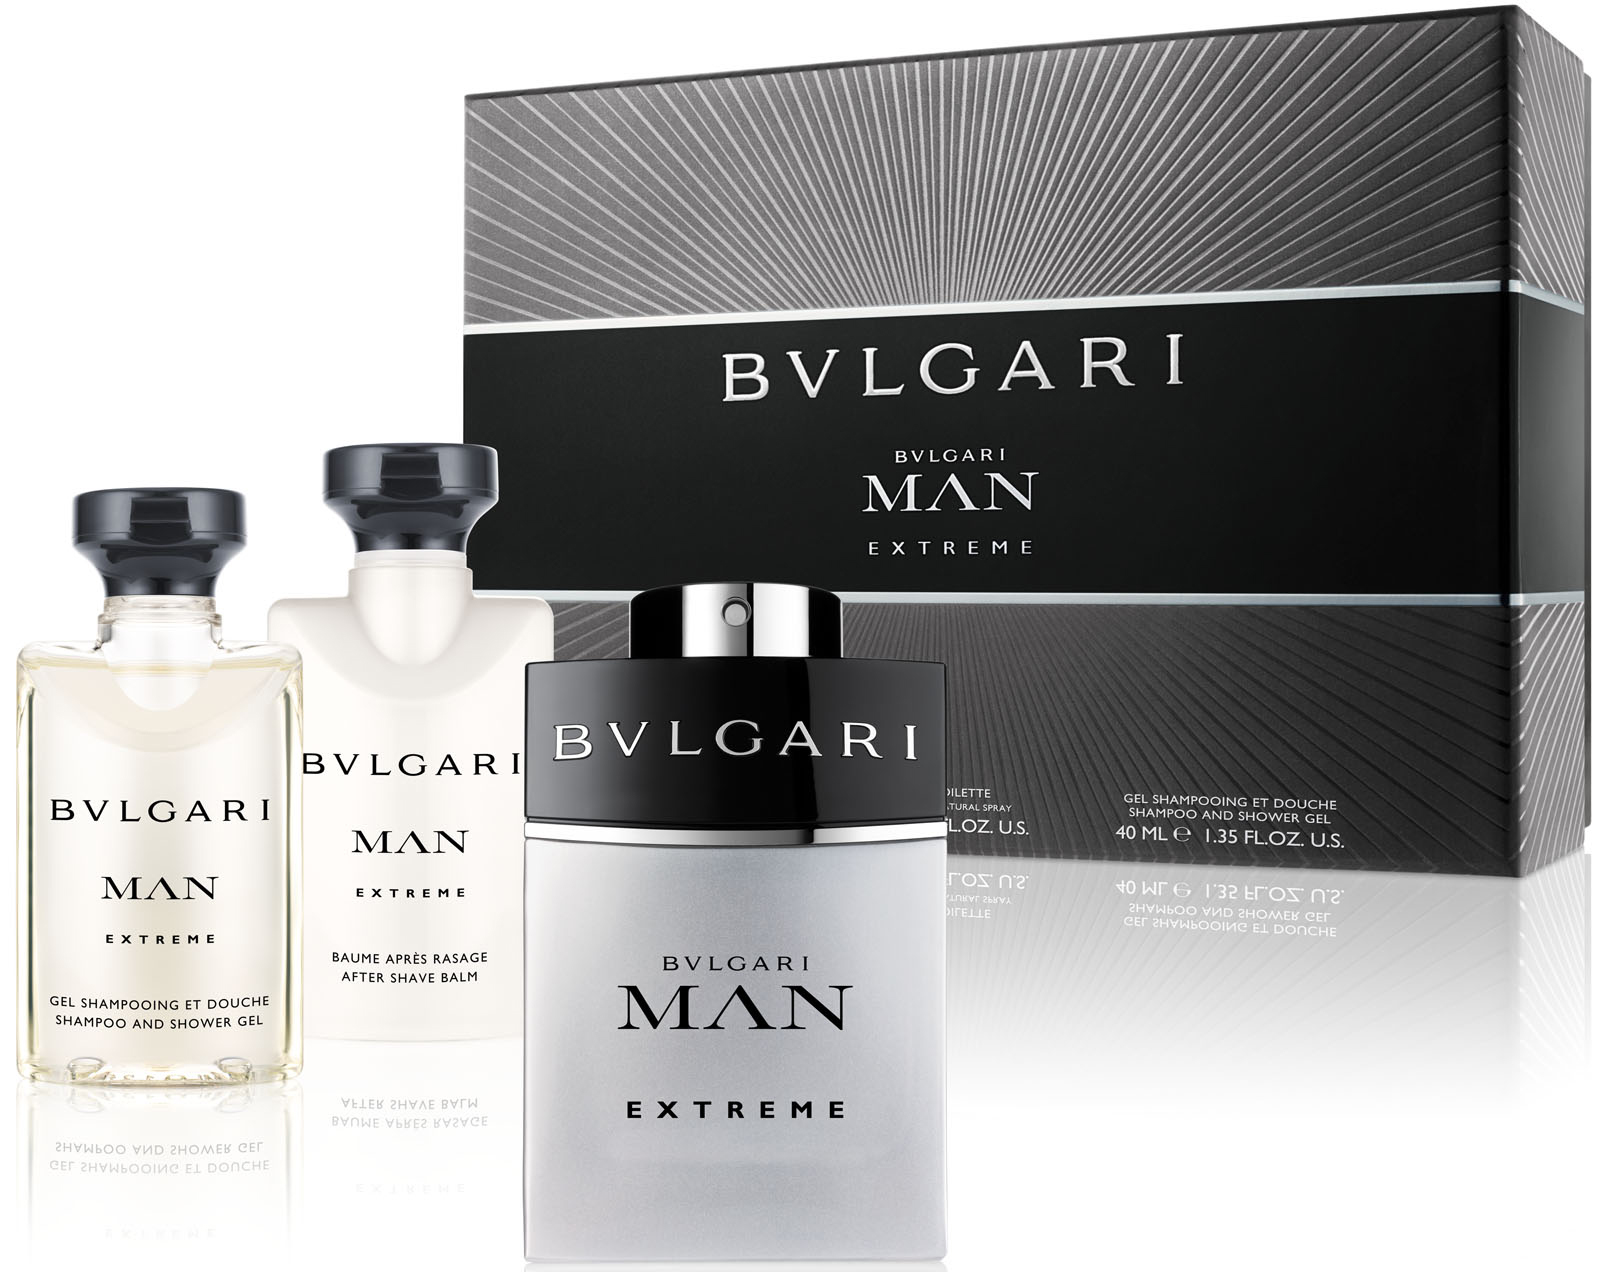 BVLGARI MAN EXTREME EDT 60 ML + GEL 40 ML + A/S 40 ML SET REGALO